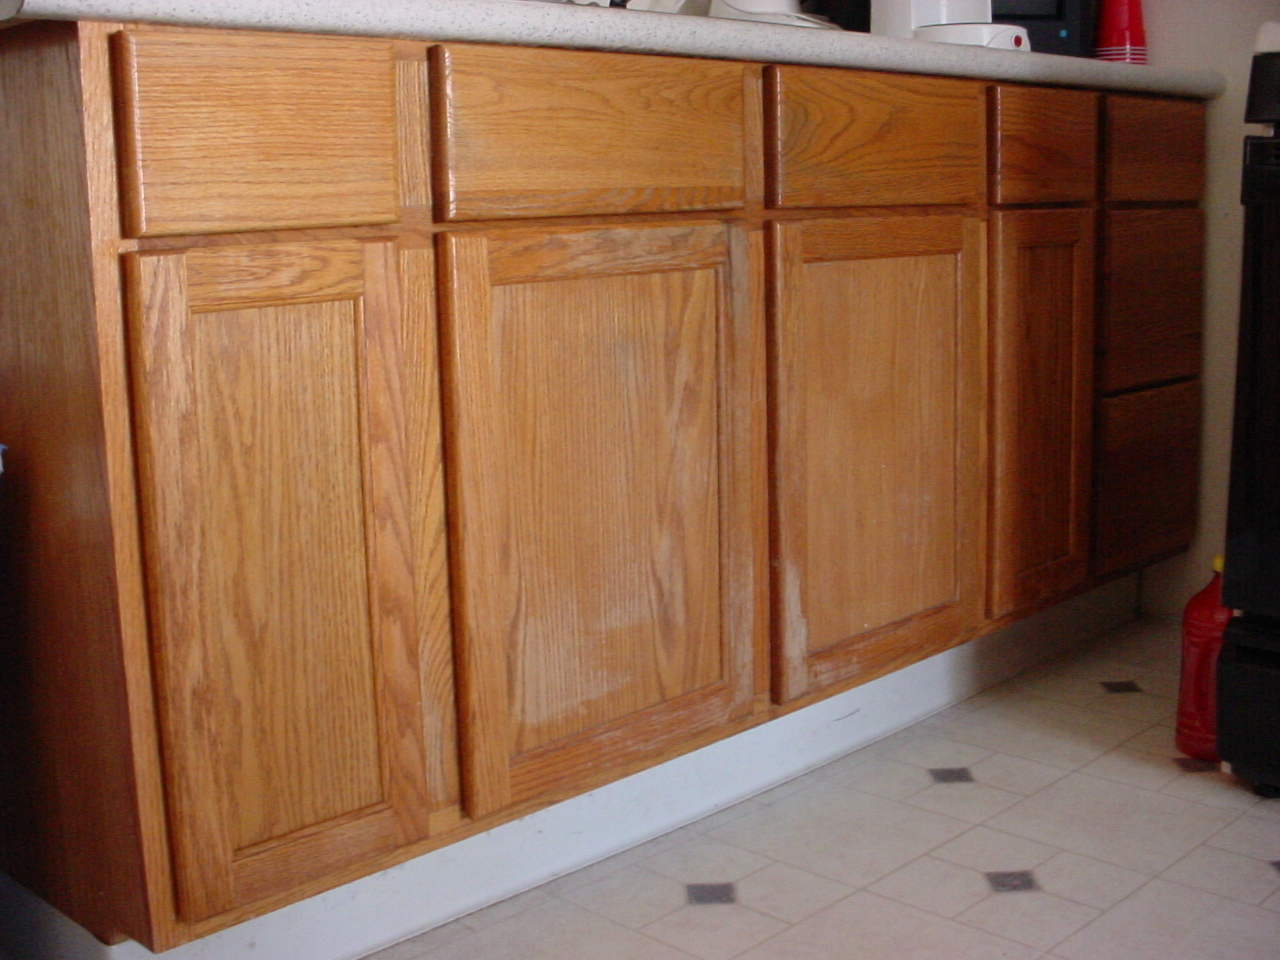 Cabinets In Need Of Re Staining See How The Old Stain Is Very Faded